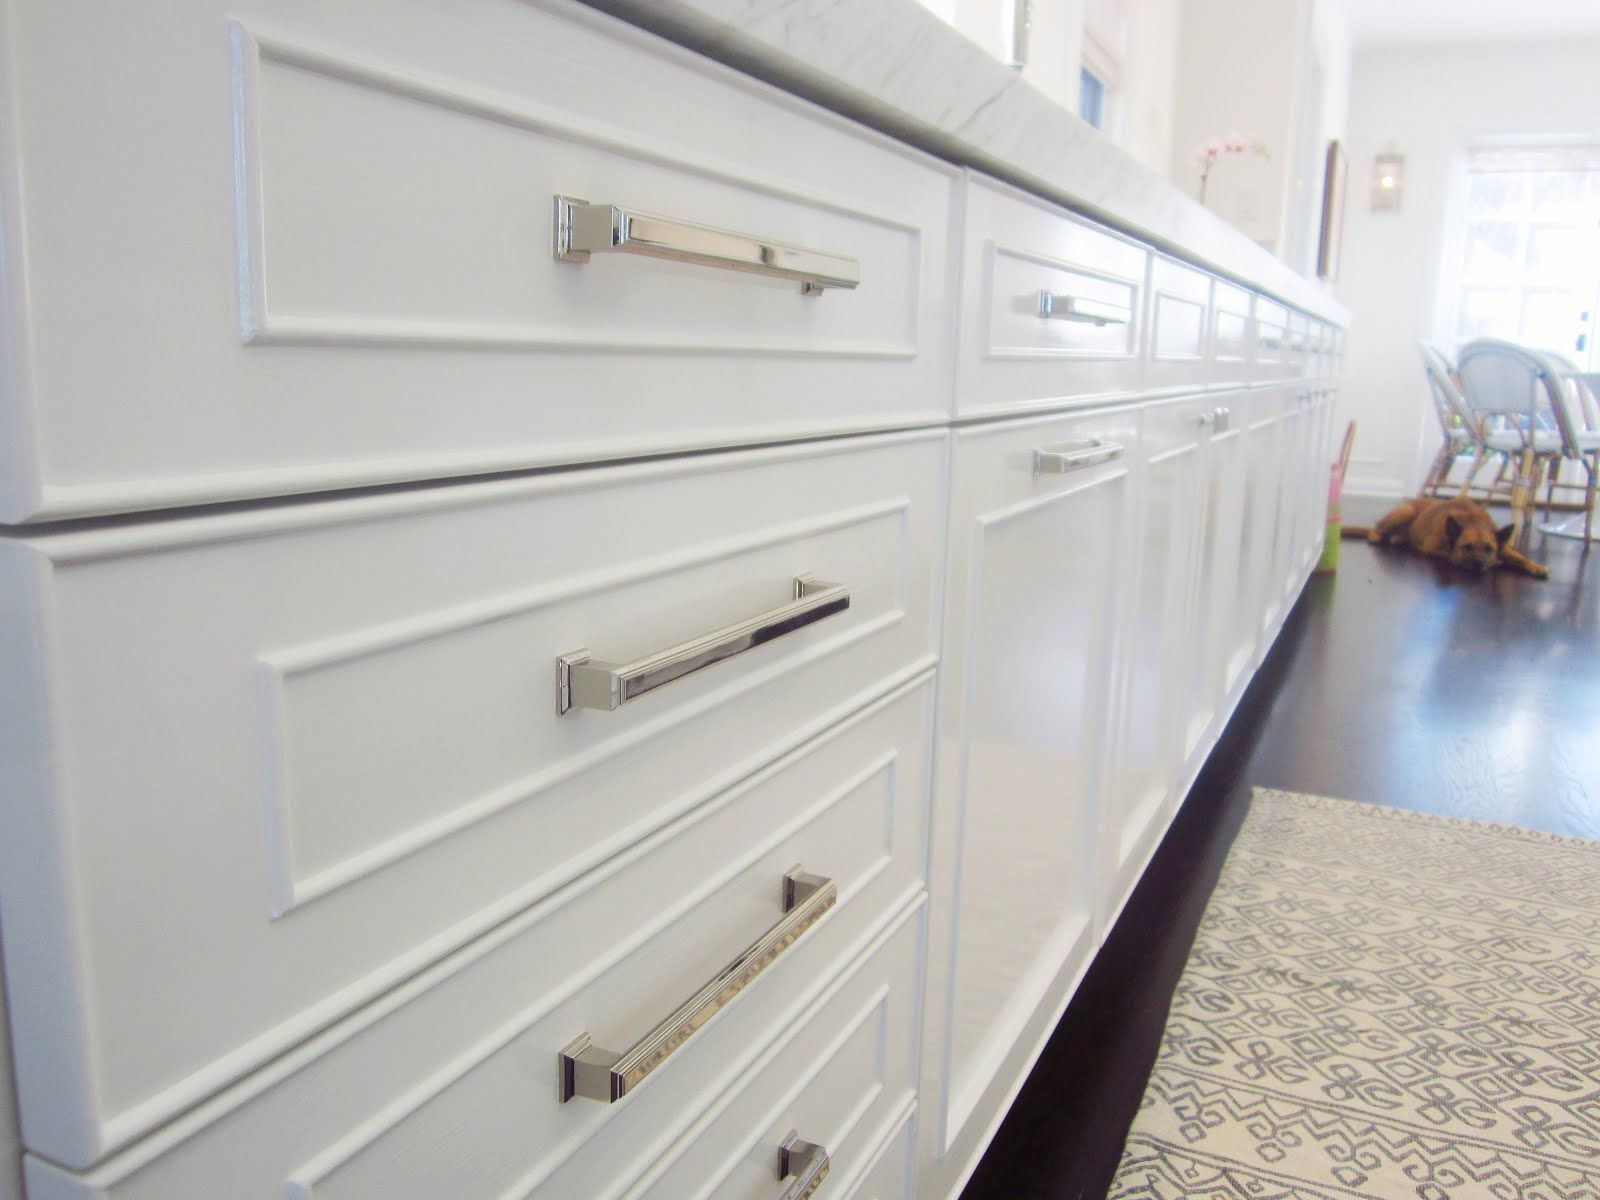 Hardware For White Kitchens | Polished Nickel Hardware For Drawer Pulls And Cabinet  Knobs Add .